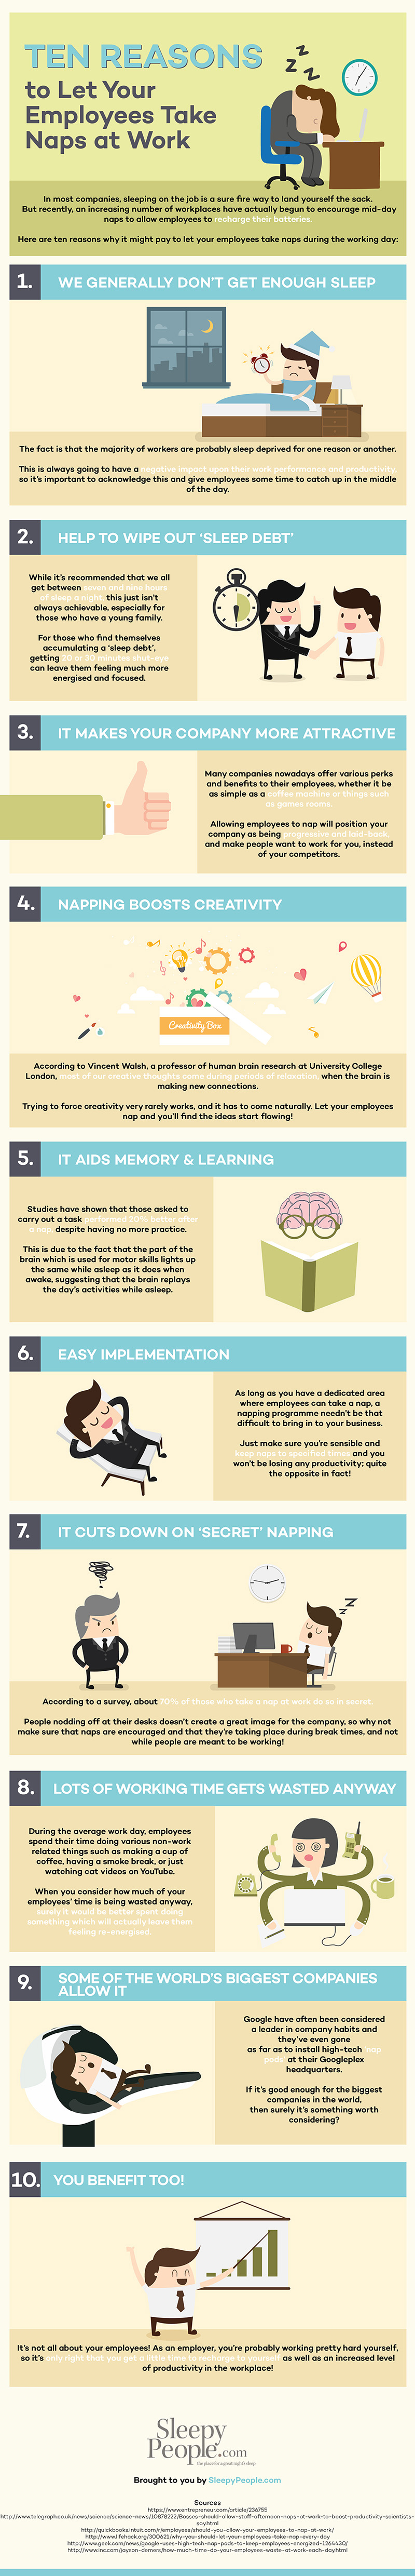 10 Reasons To Let Your Employees Take Naps At Work [Infographic]